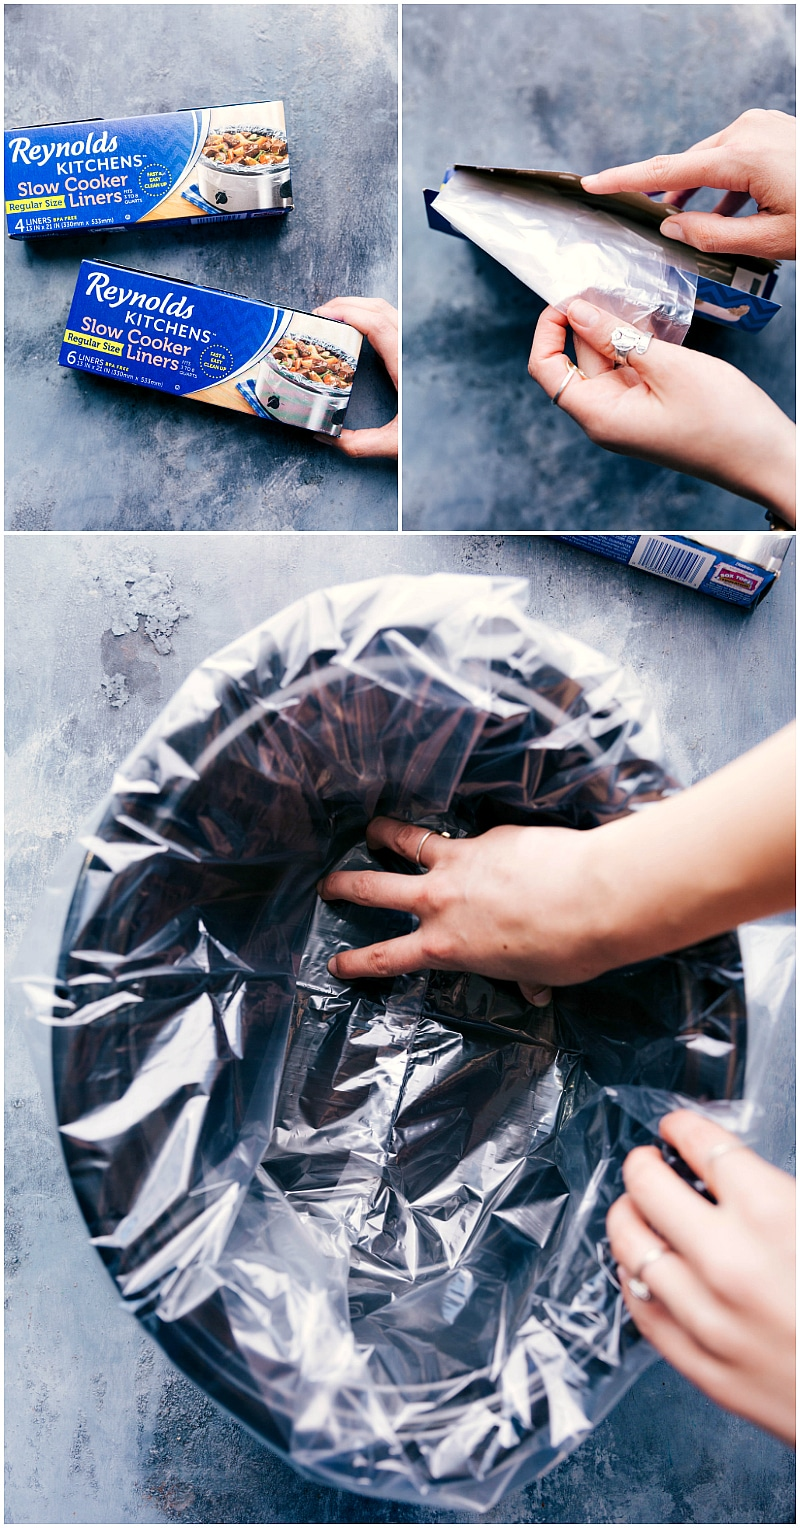 Images of the reynolds slow cooker covers that help keep your crockpot clean when using it